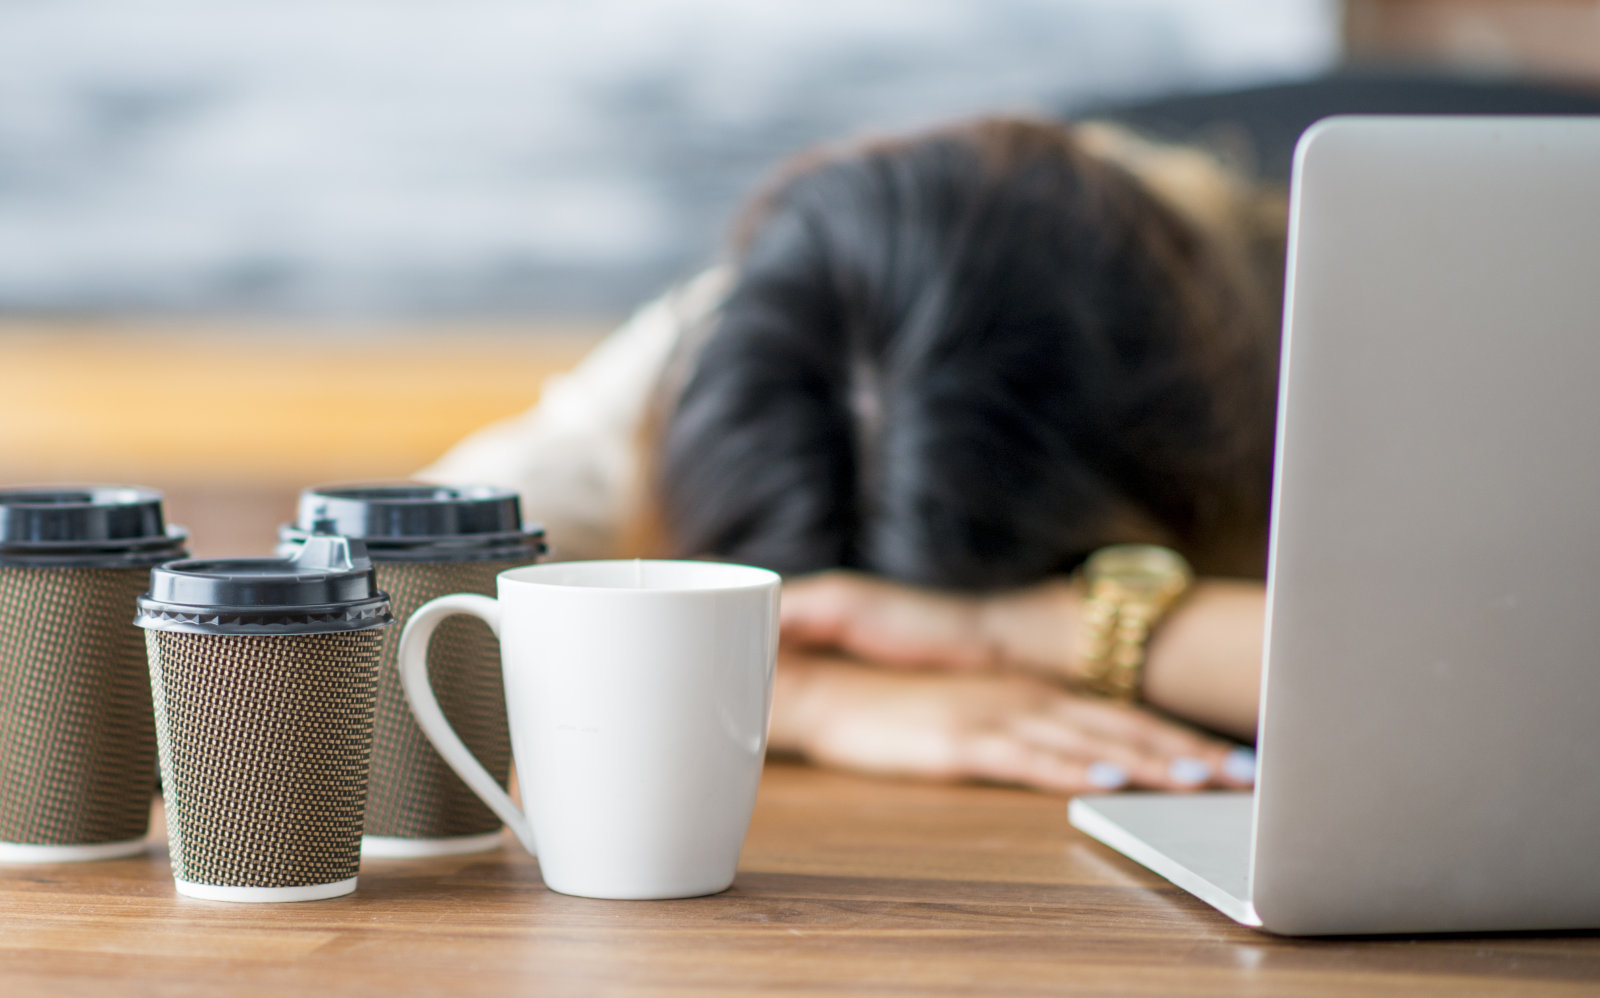 A female entrepreneur and businesswoman is working on her start up company in her office. She has fallen asleep at the office with her head on her desk. Empty coffee cups are on the table.